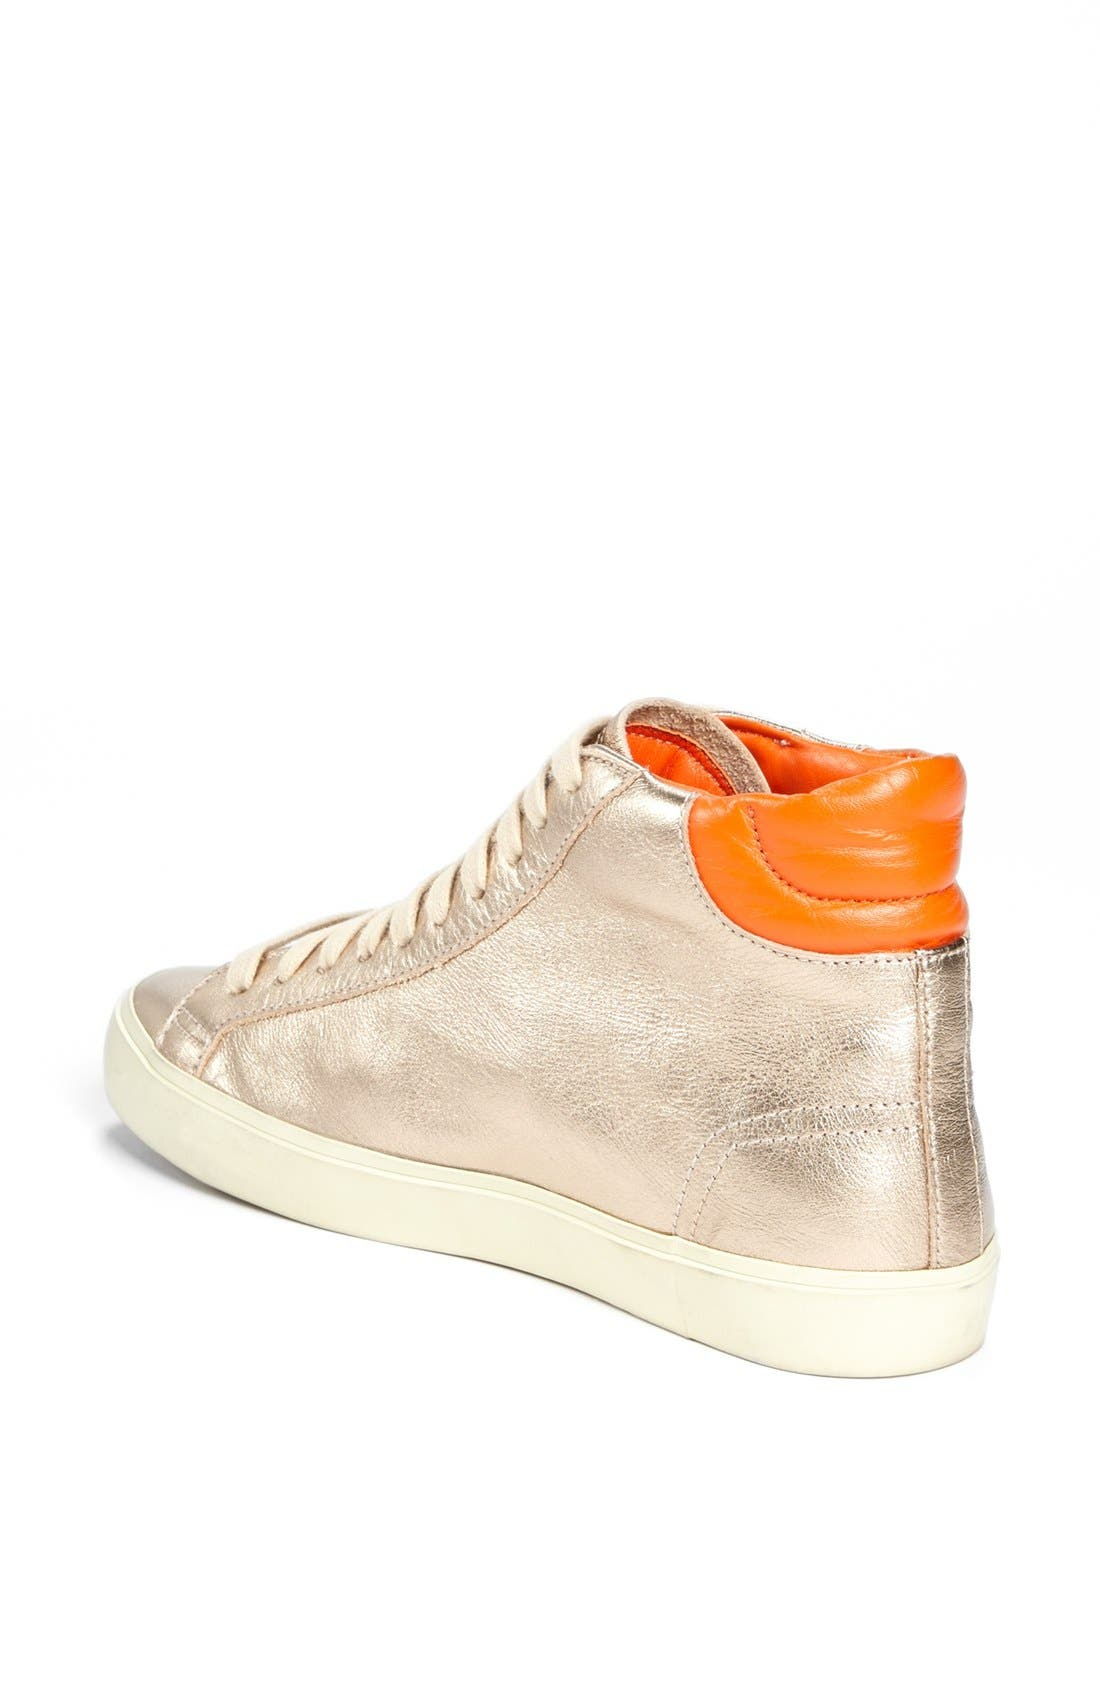 Alternate Image 2  - Tory Burch 'Caleb' High Top Leather Sneaker